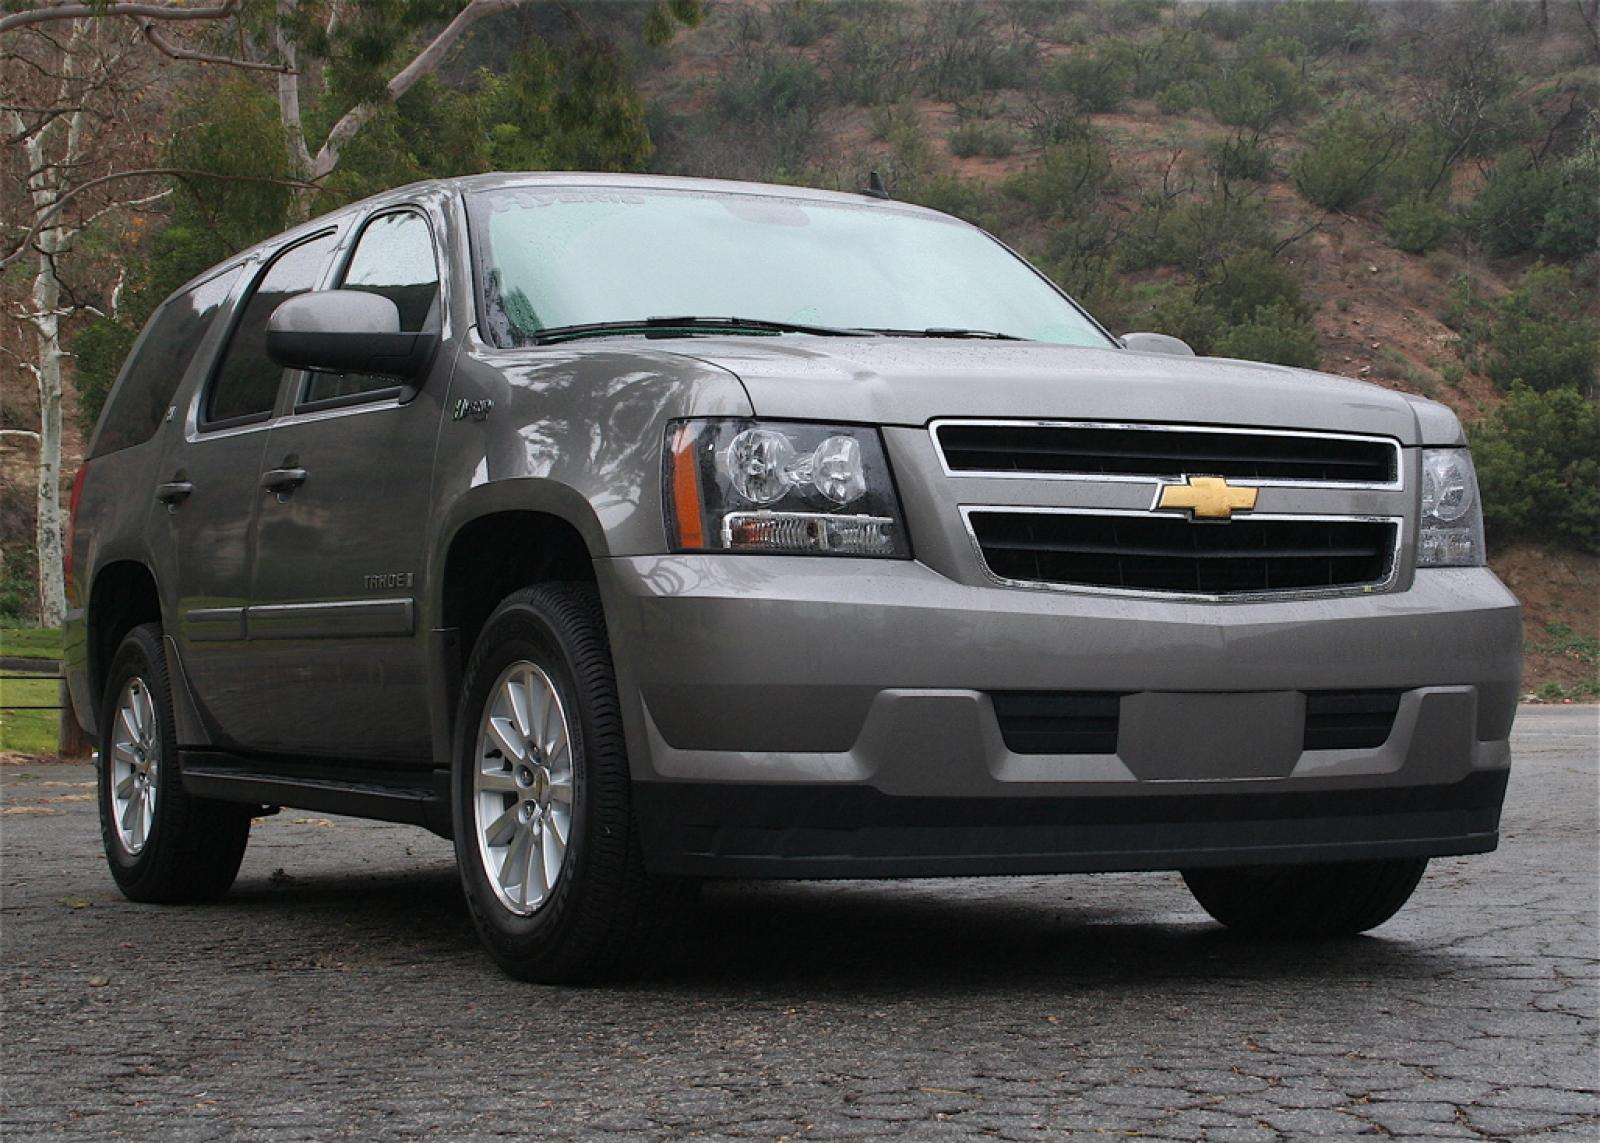 2008 chevrolet tahoe information and photos zombiedrive. Black Bedroom Furniture Sets. Home Design Ideas